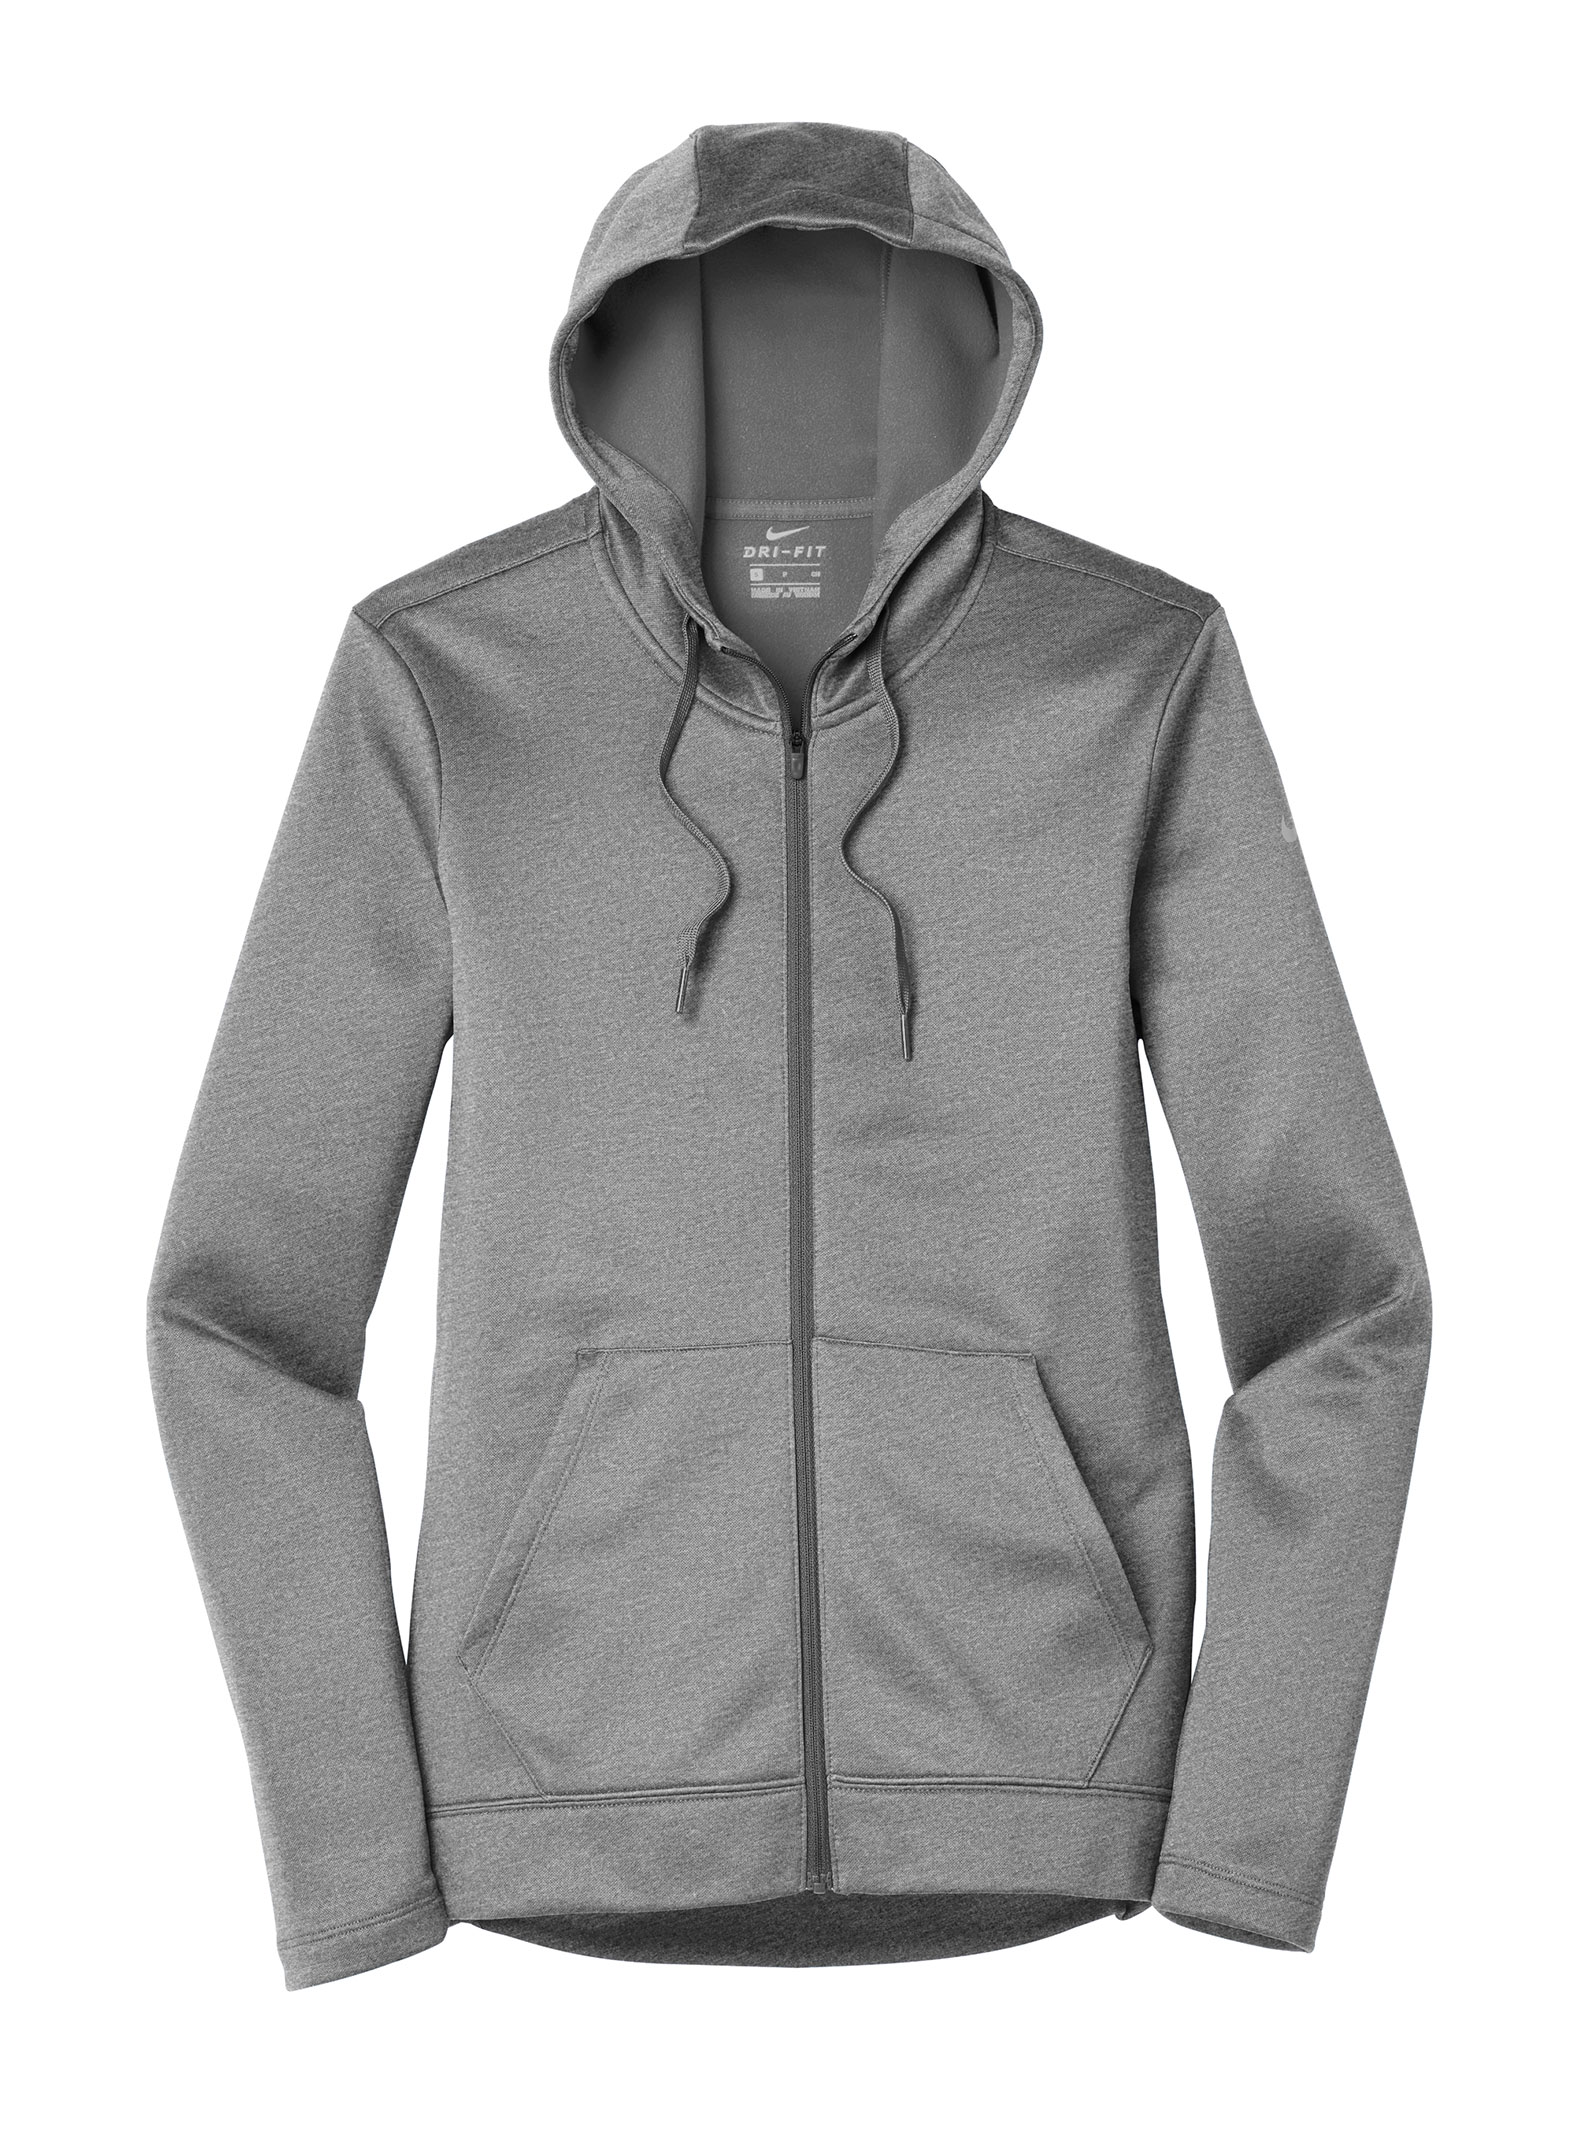 88ae5137246 Nike Ladies Therma-FIT Full-Zip Fleece Hoodie - Design Online